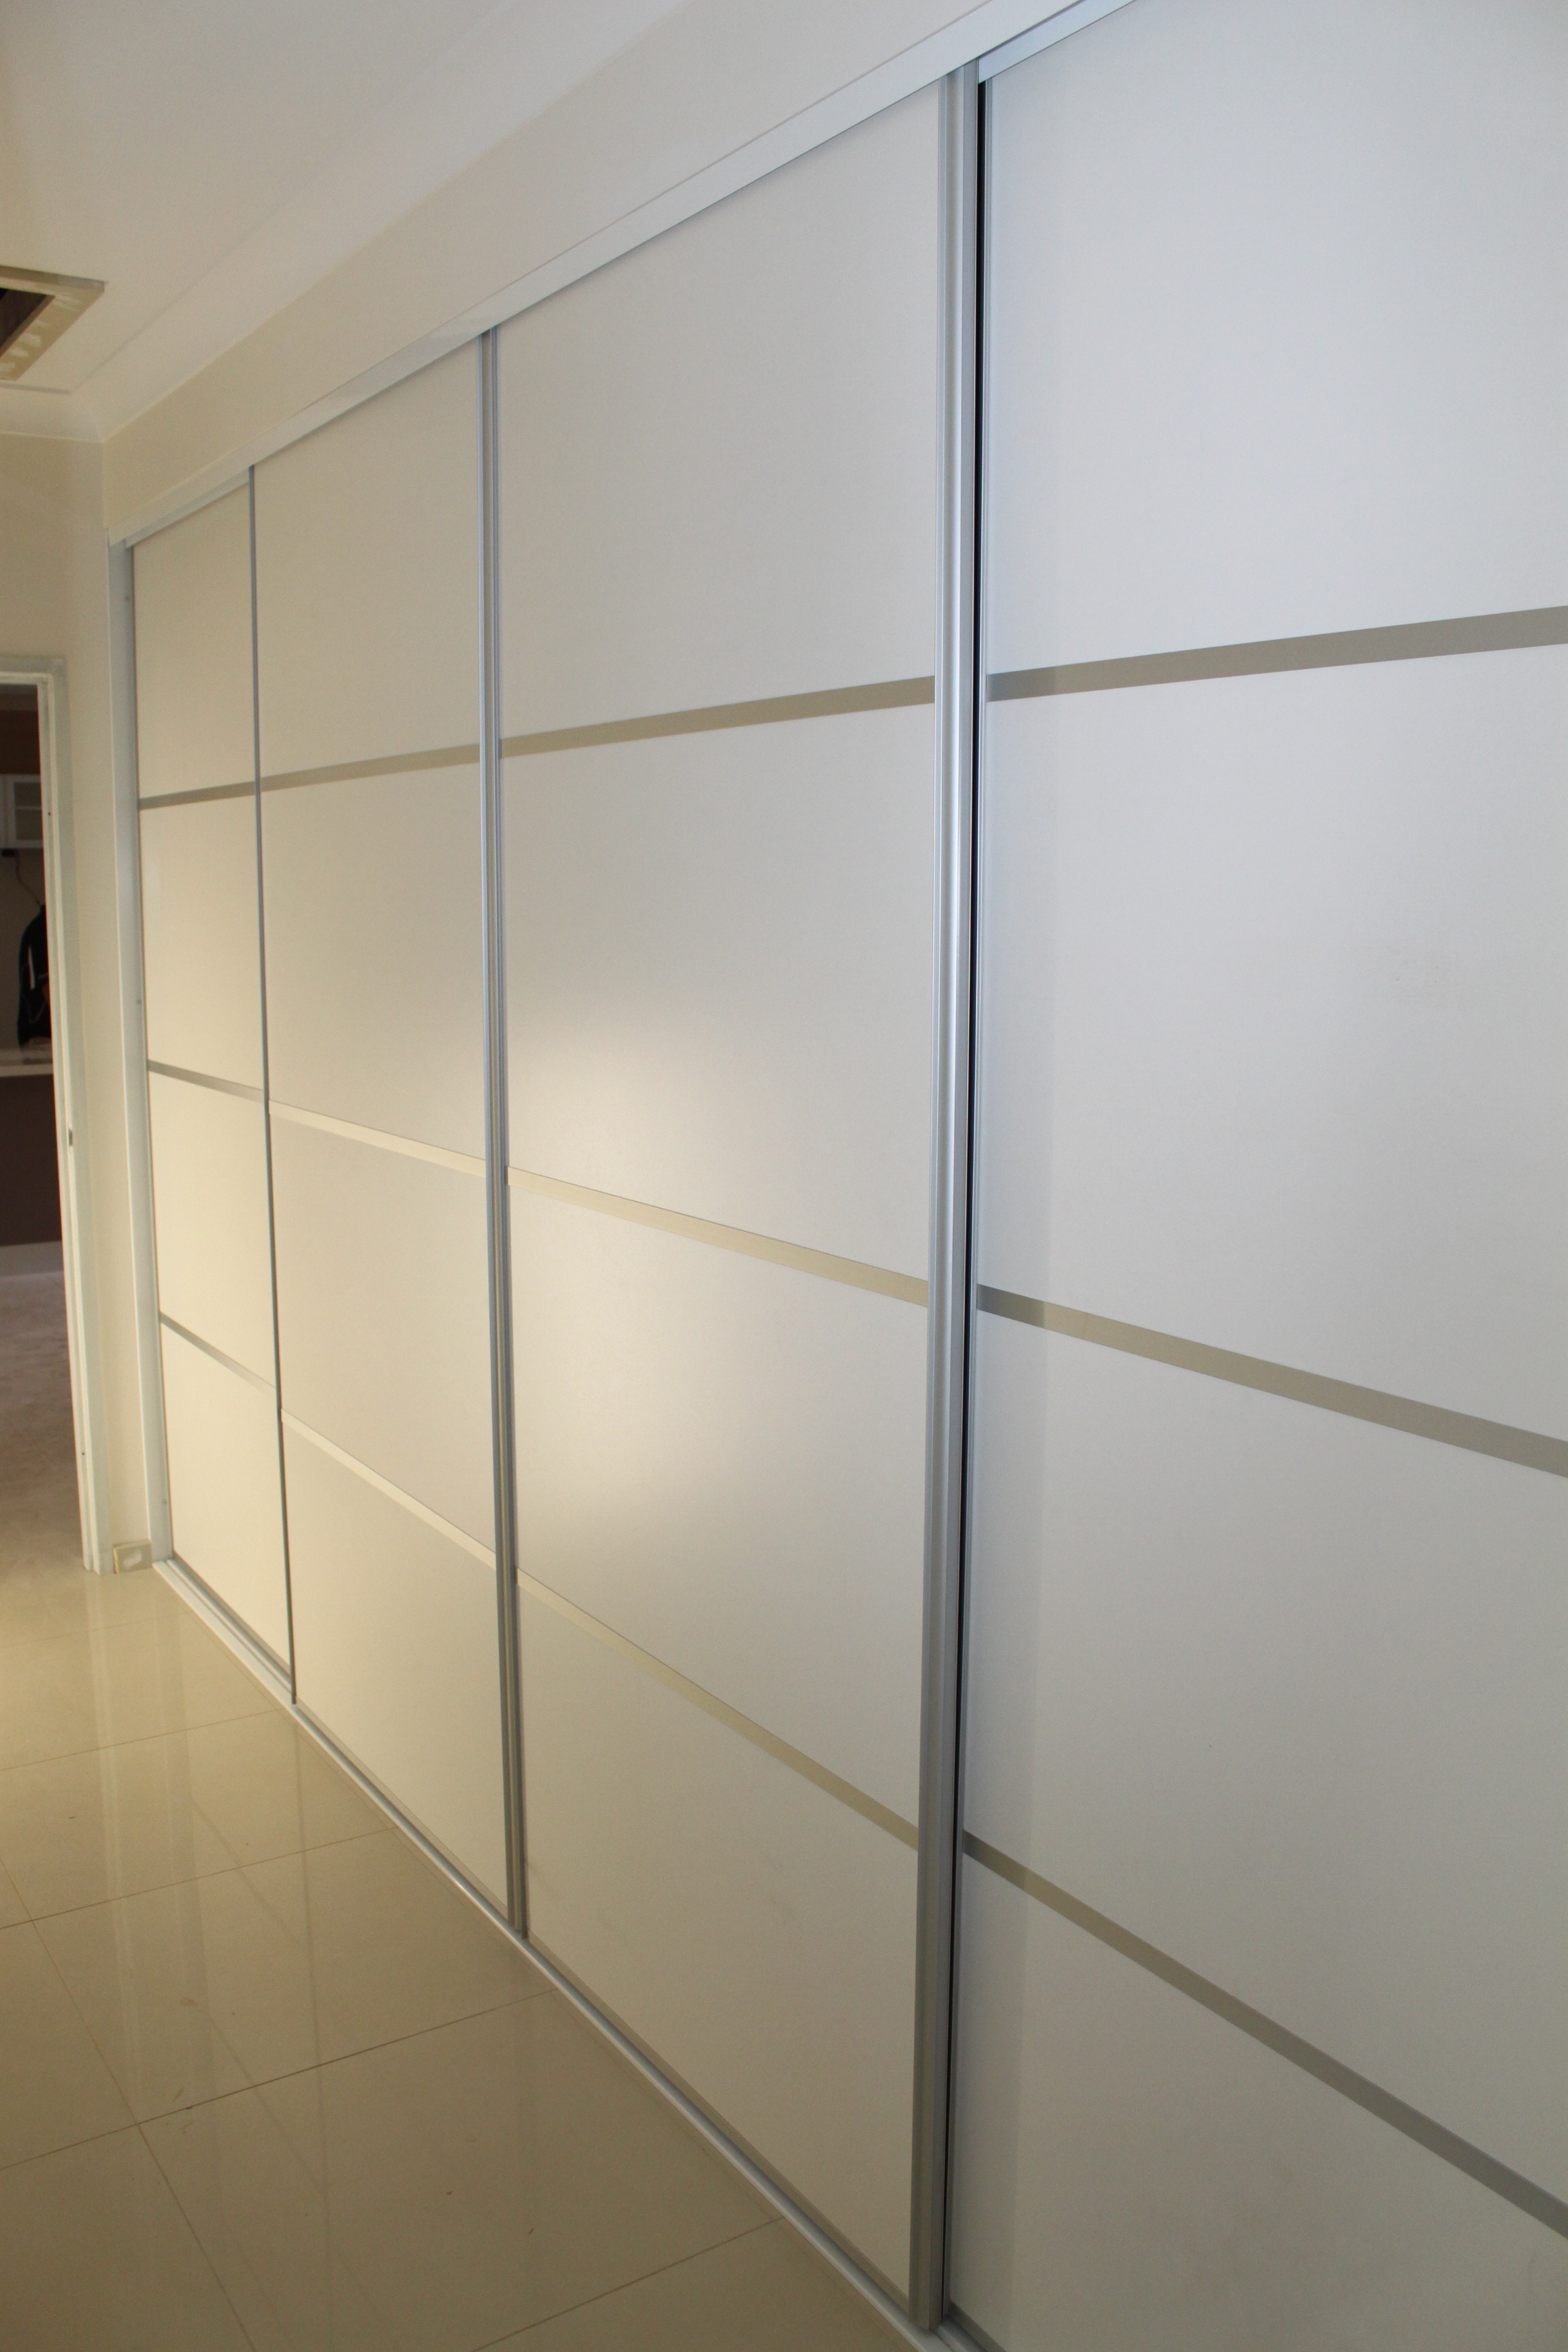 Cupboard Doors 25 Photos Hallway Cupboard Doors Cupboard Ideas